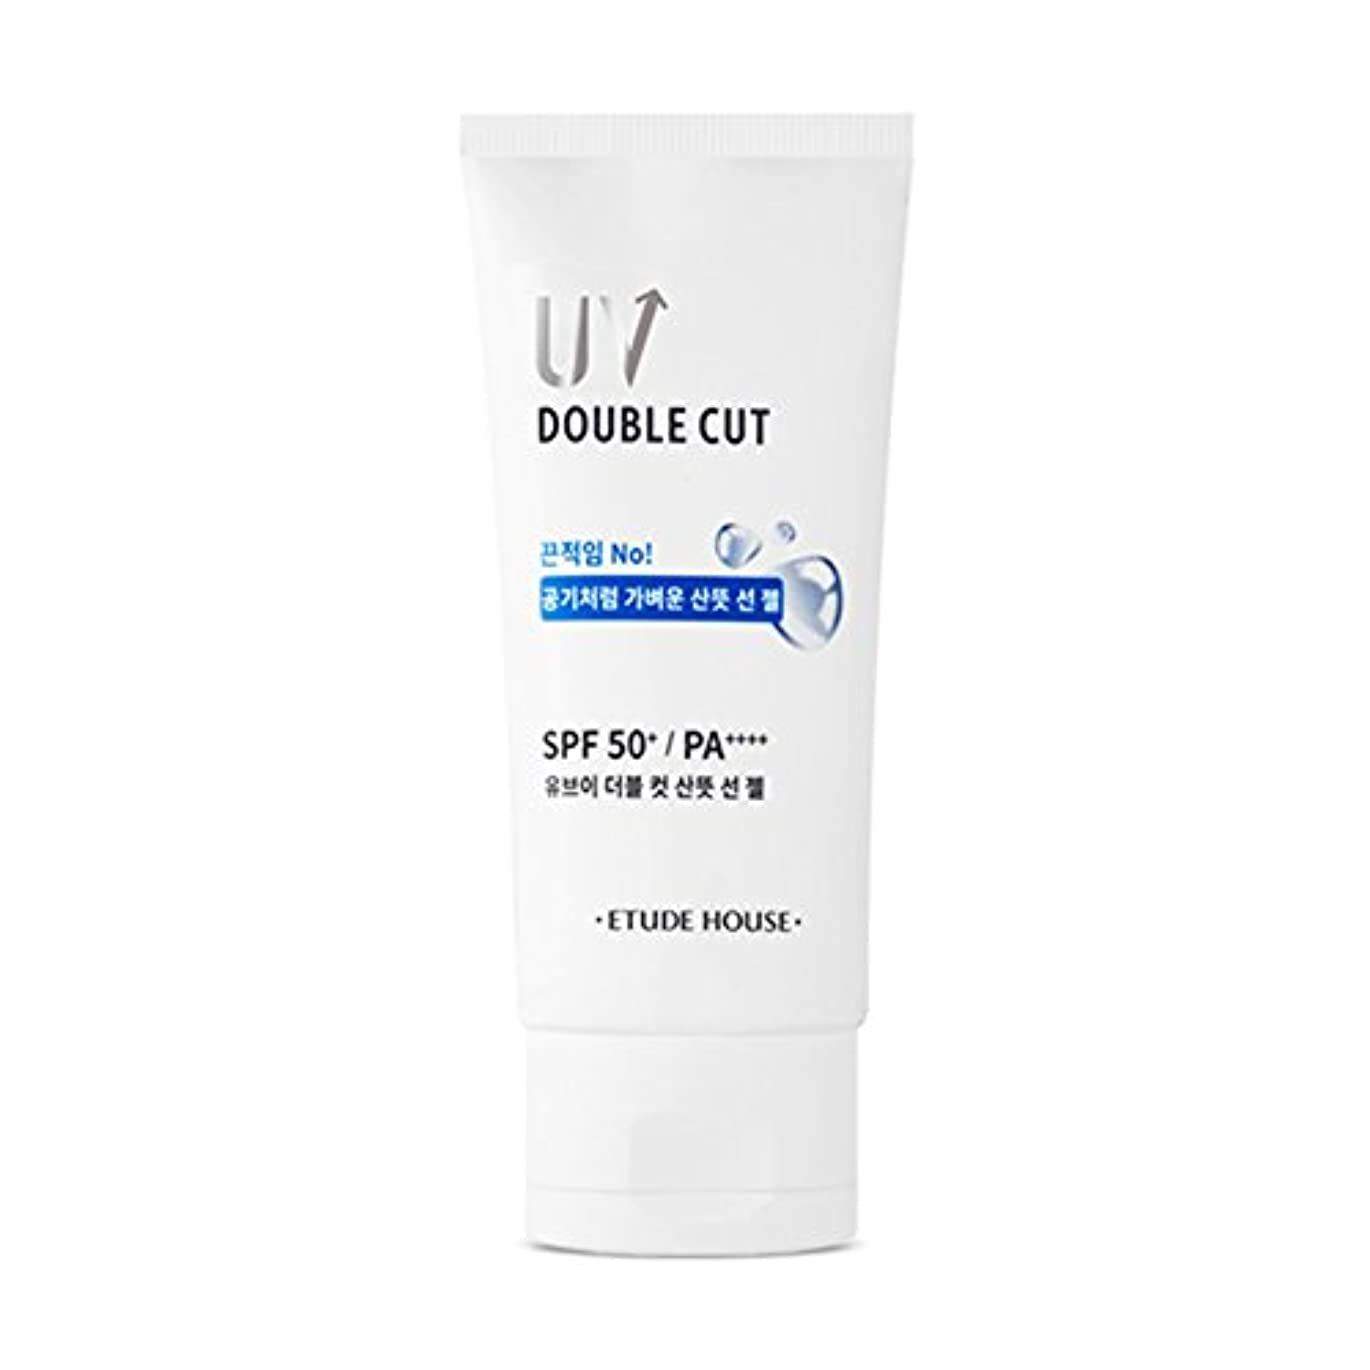 寝てる原子孤独ETUDE HOUSE エチュードハウス UV DOUBLE CUT FRESH SUN GEL SPF 50+ PA+++ 50ml/1.69 fl.oz